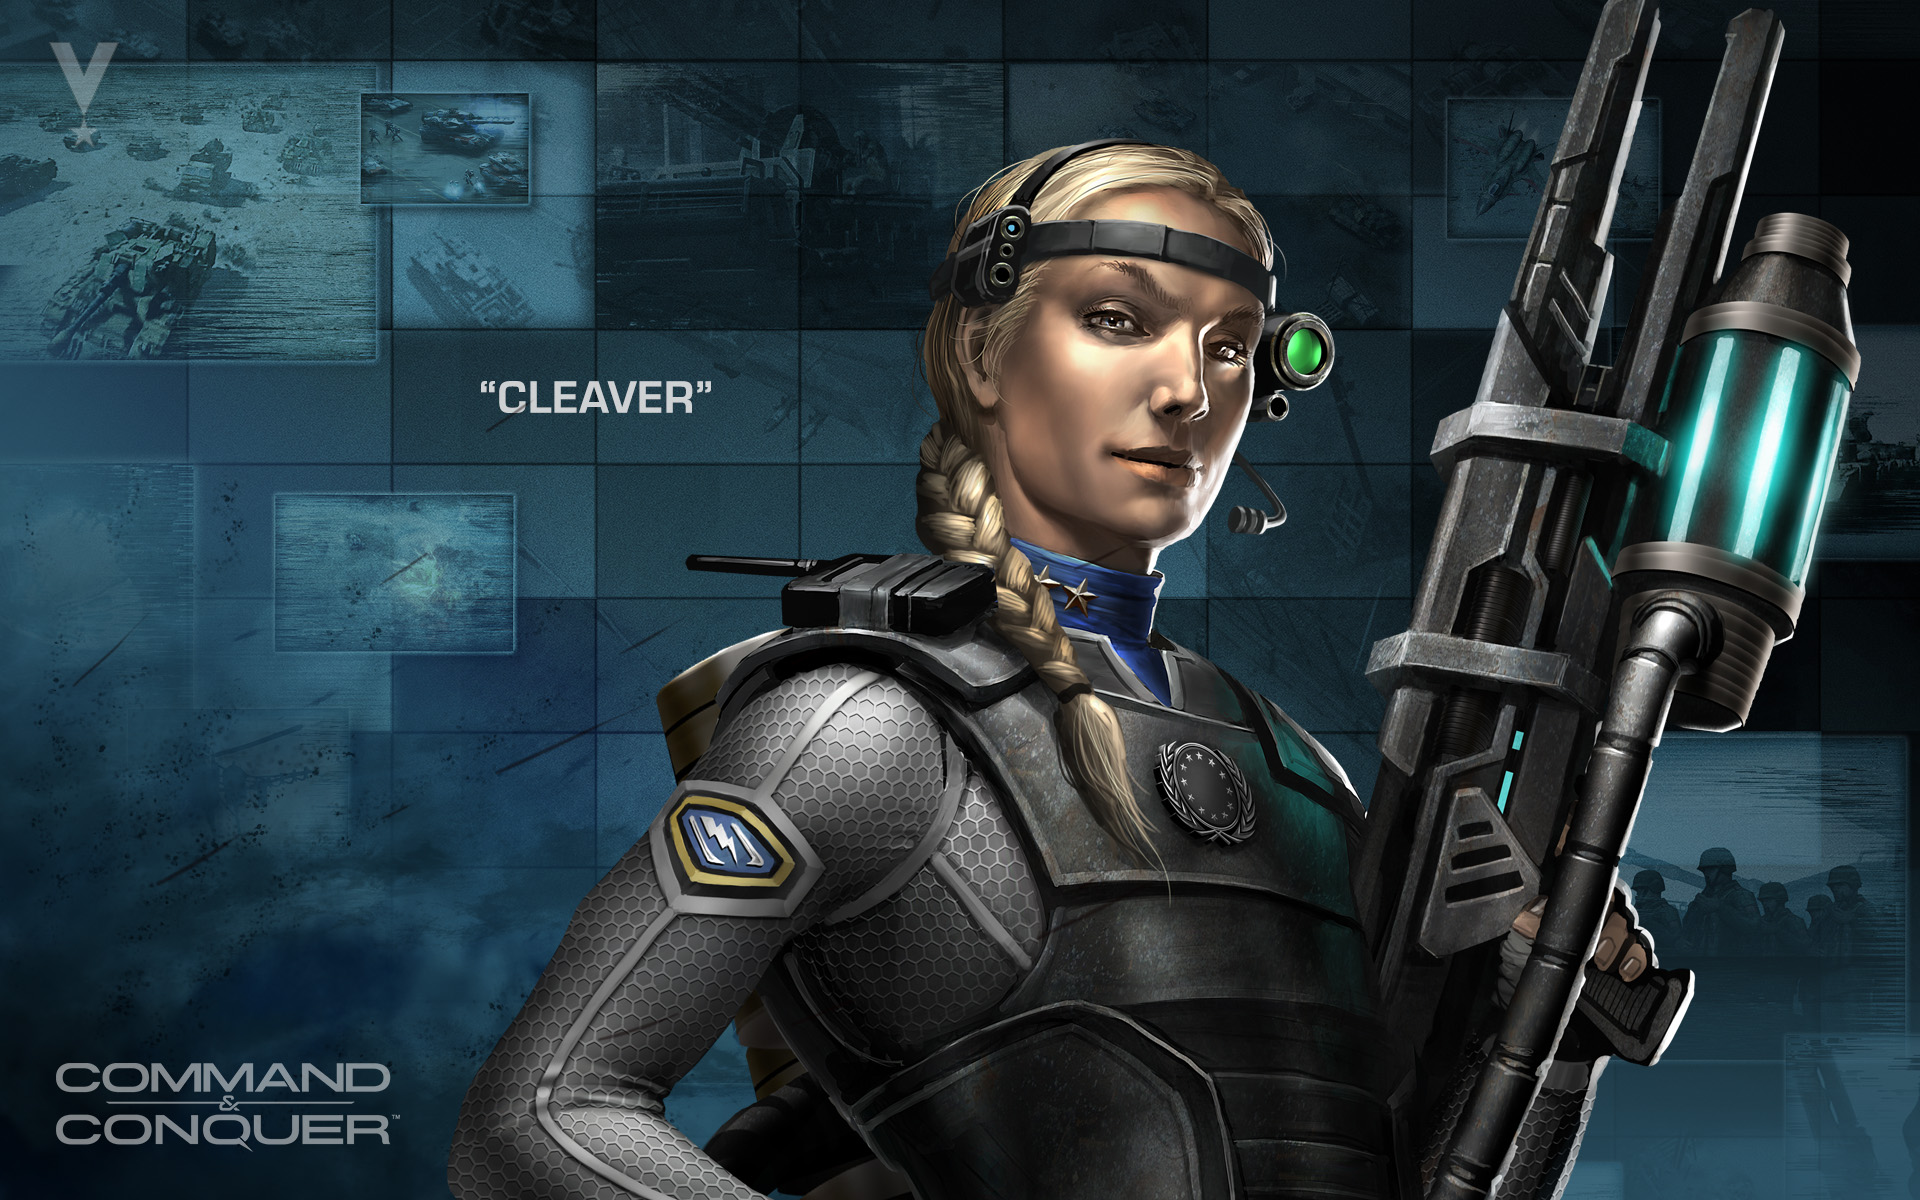 Command And Conquer Wallpaper: Command And Conquer Wiki